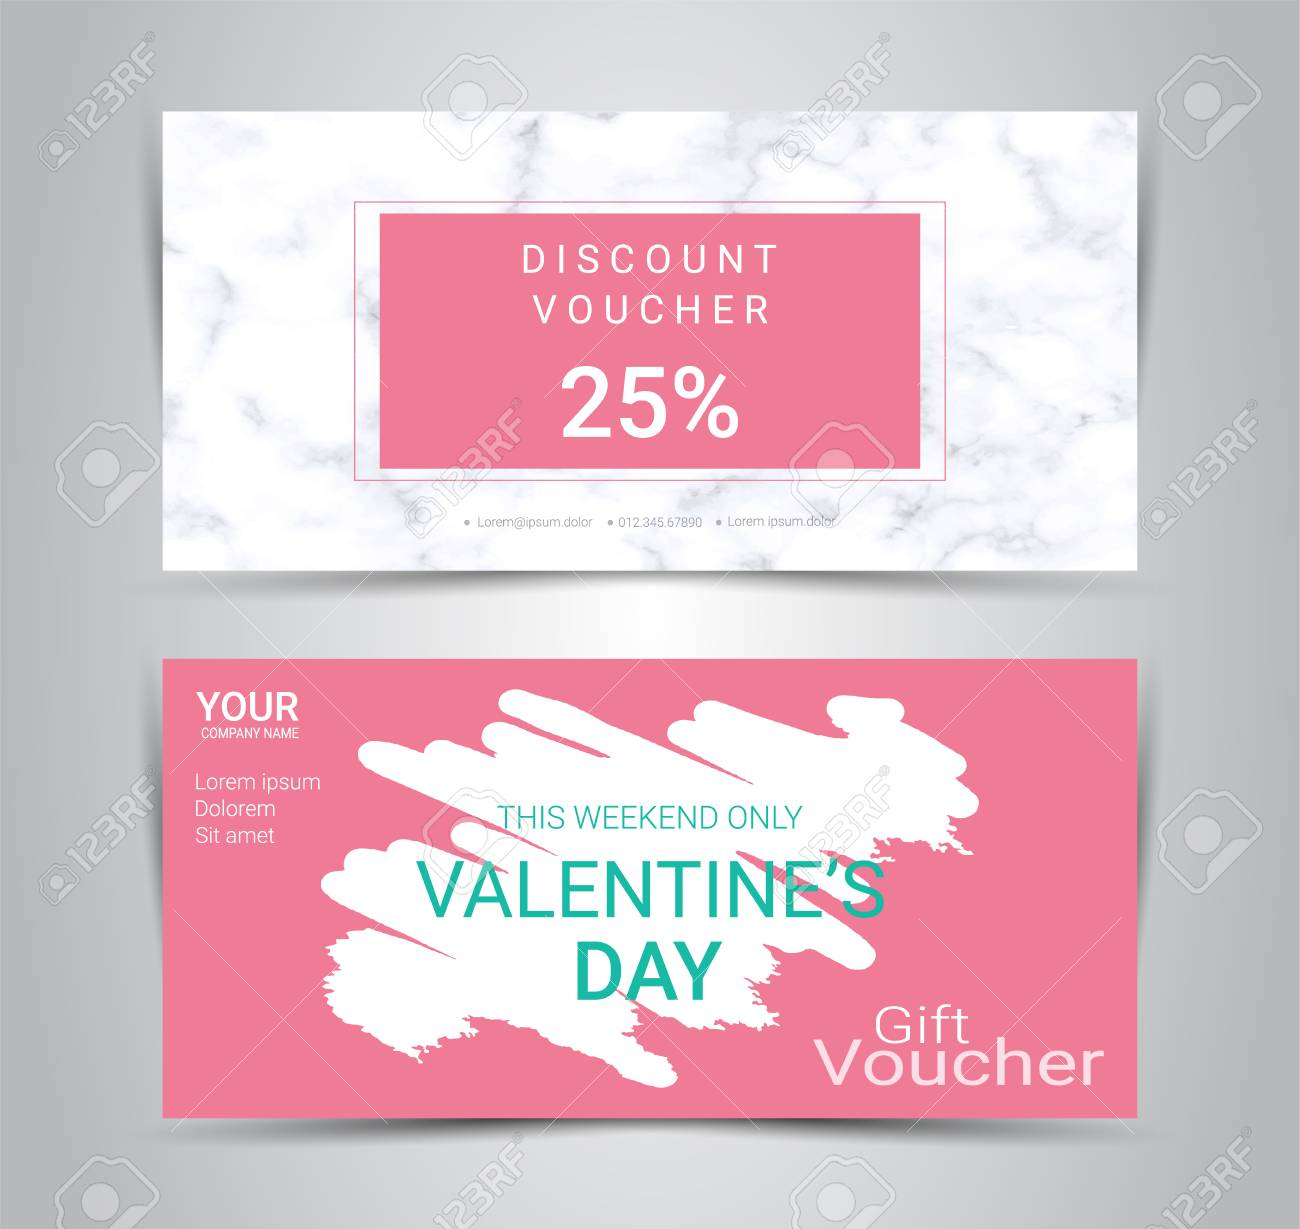 Valentine S Day Gift Certificate And Voucher Promotion Template